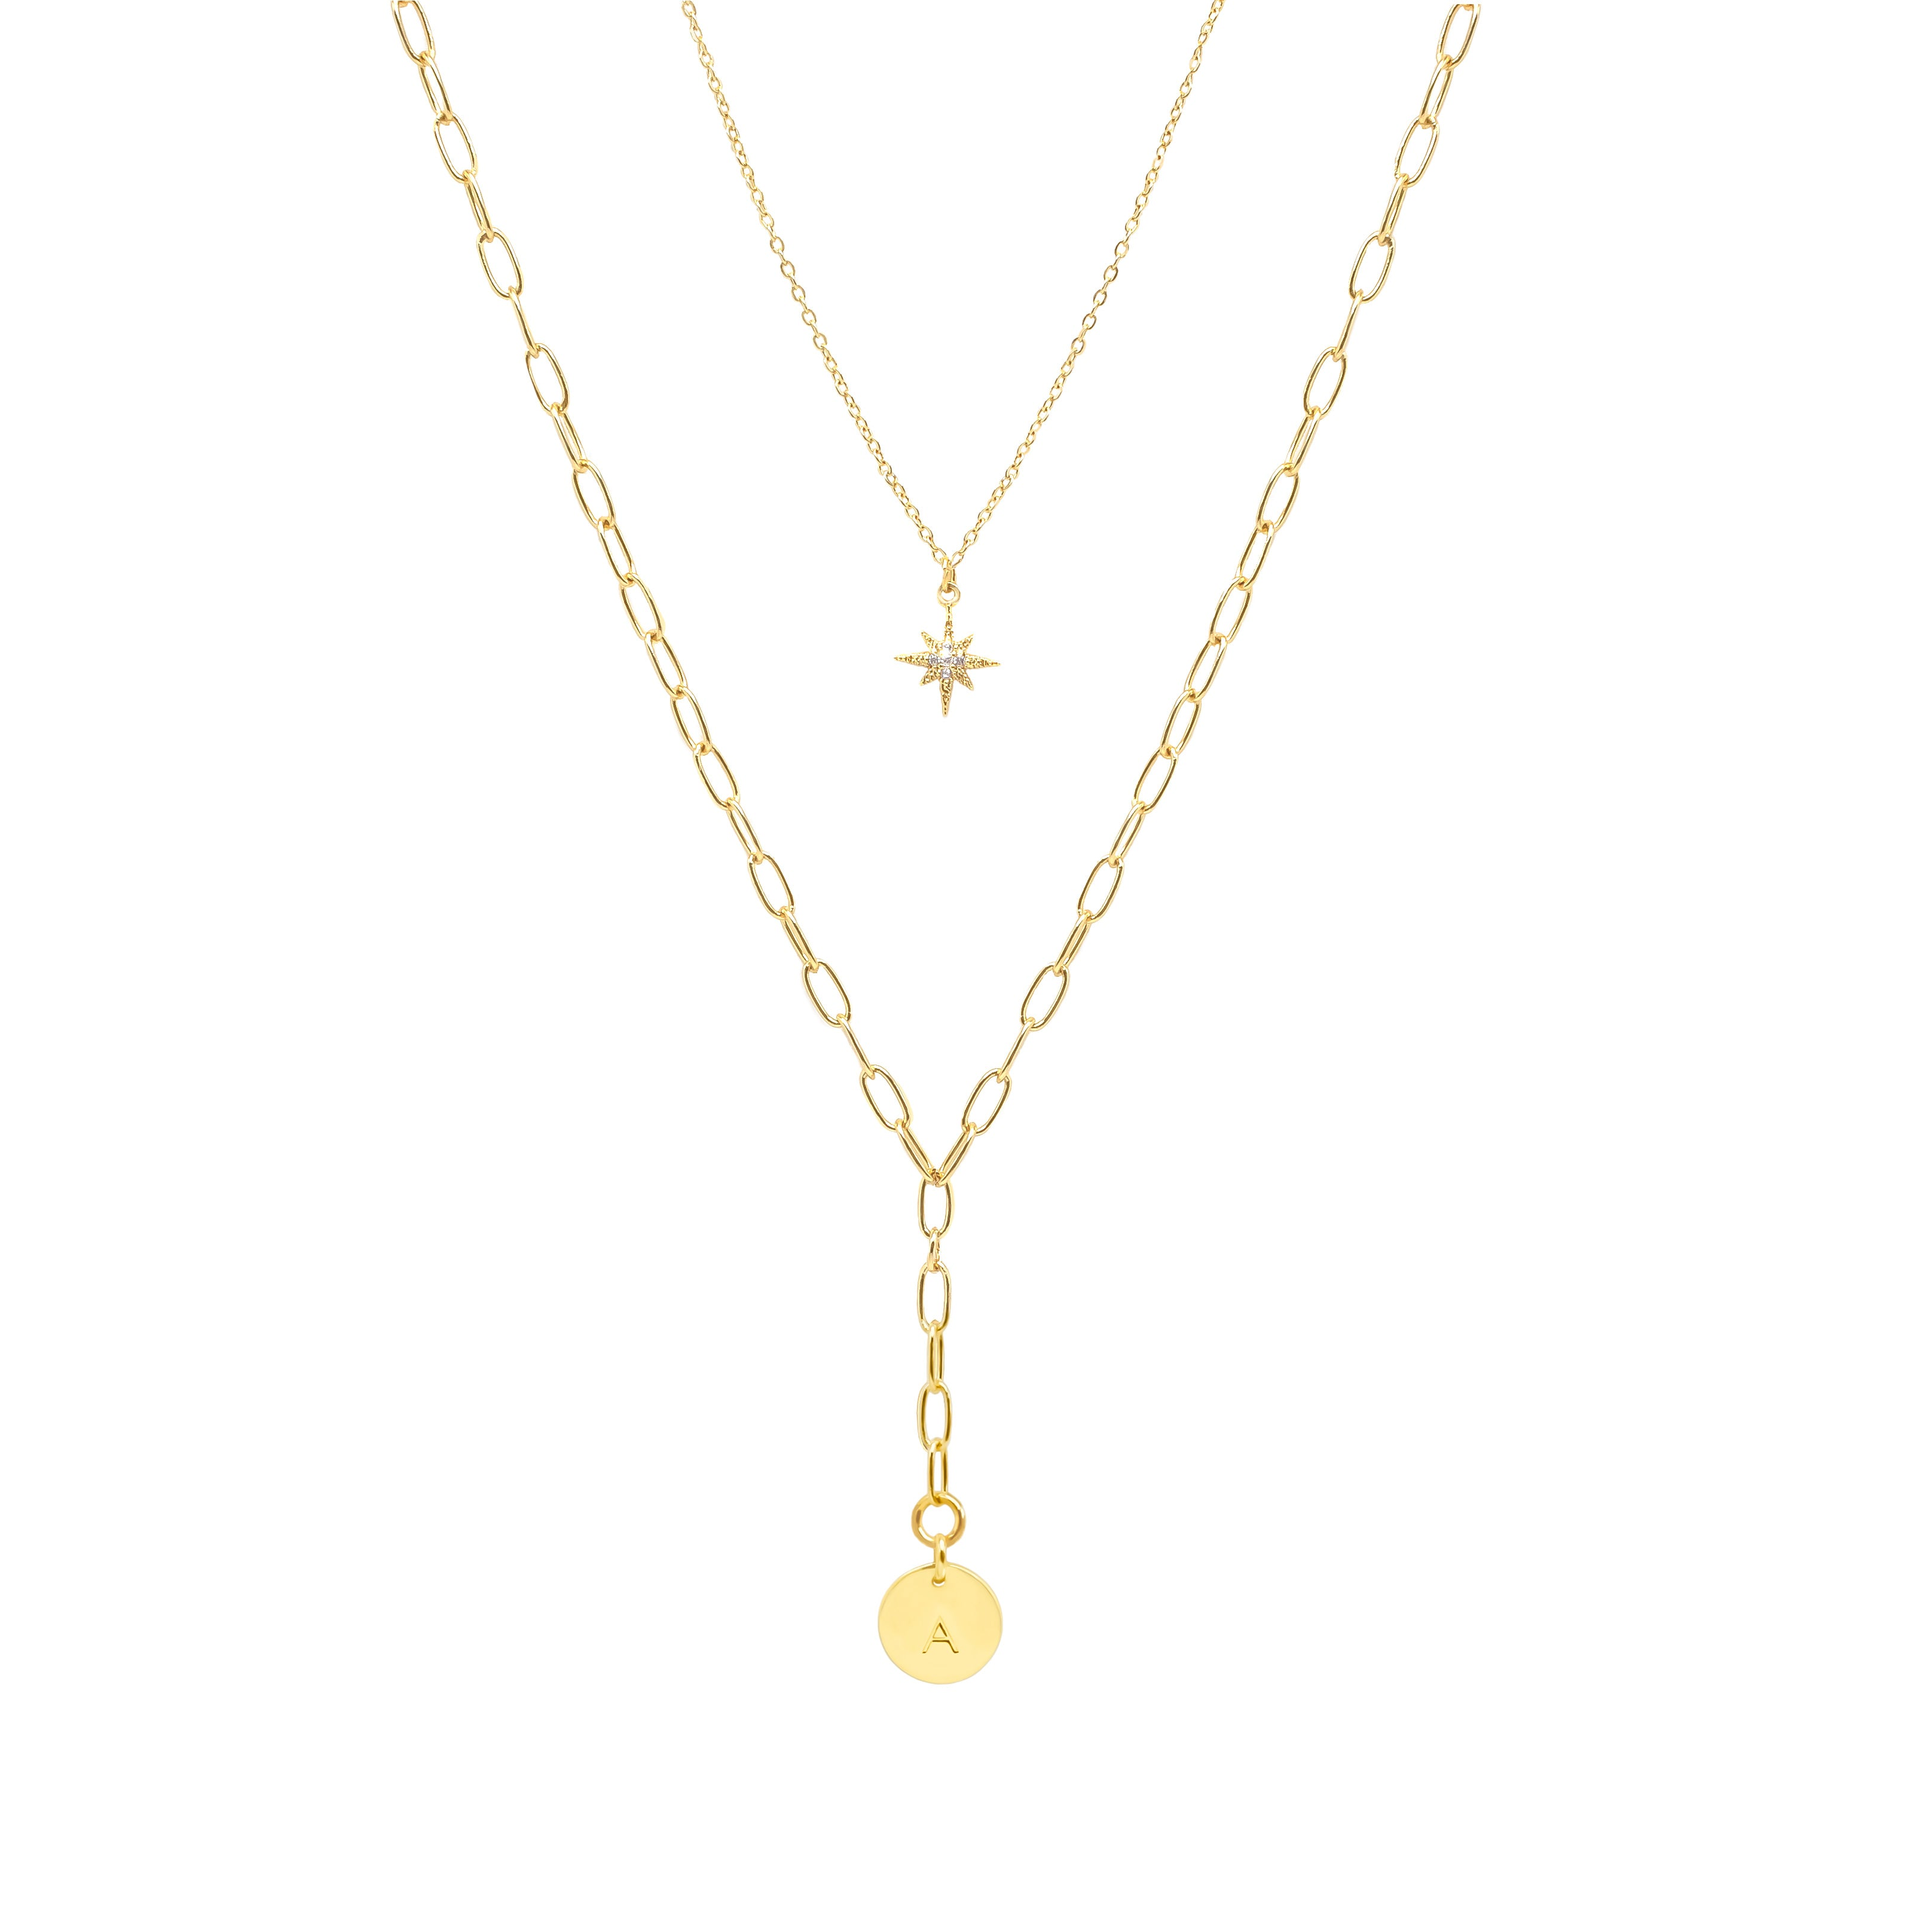 Layered Y Necklace with Starburst and Initial Charm - IT STYLE BOX